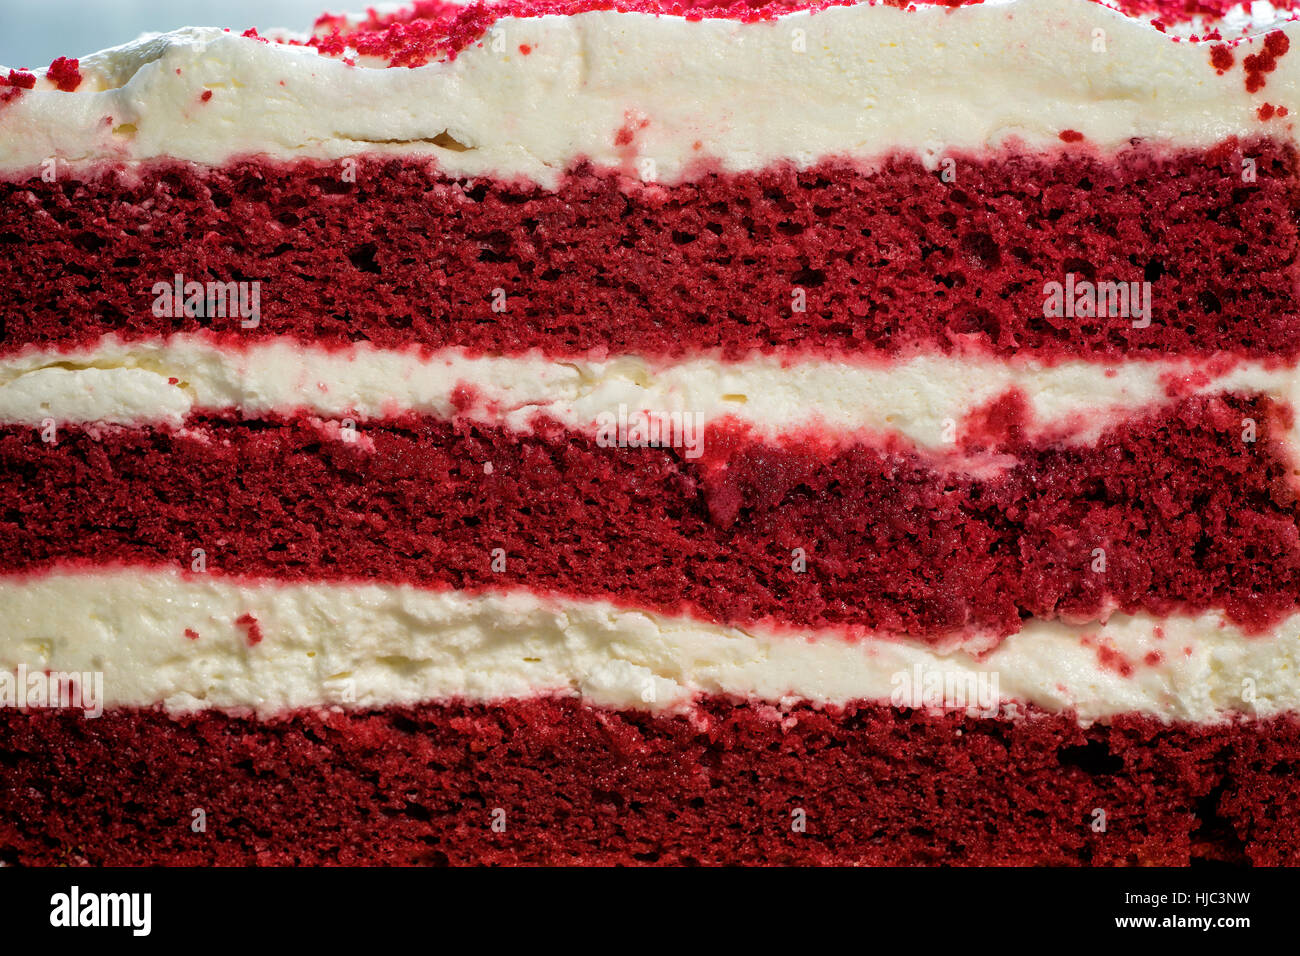 face cut of red velvel cake on macro image - can use to display or montage on product - Stock Image